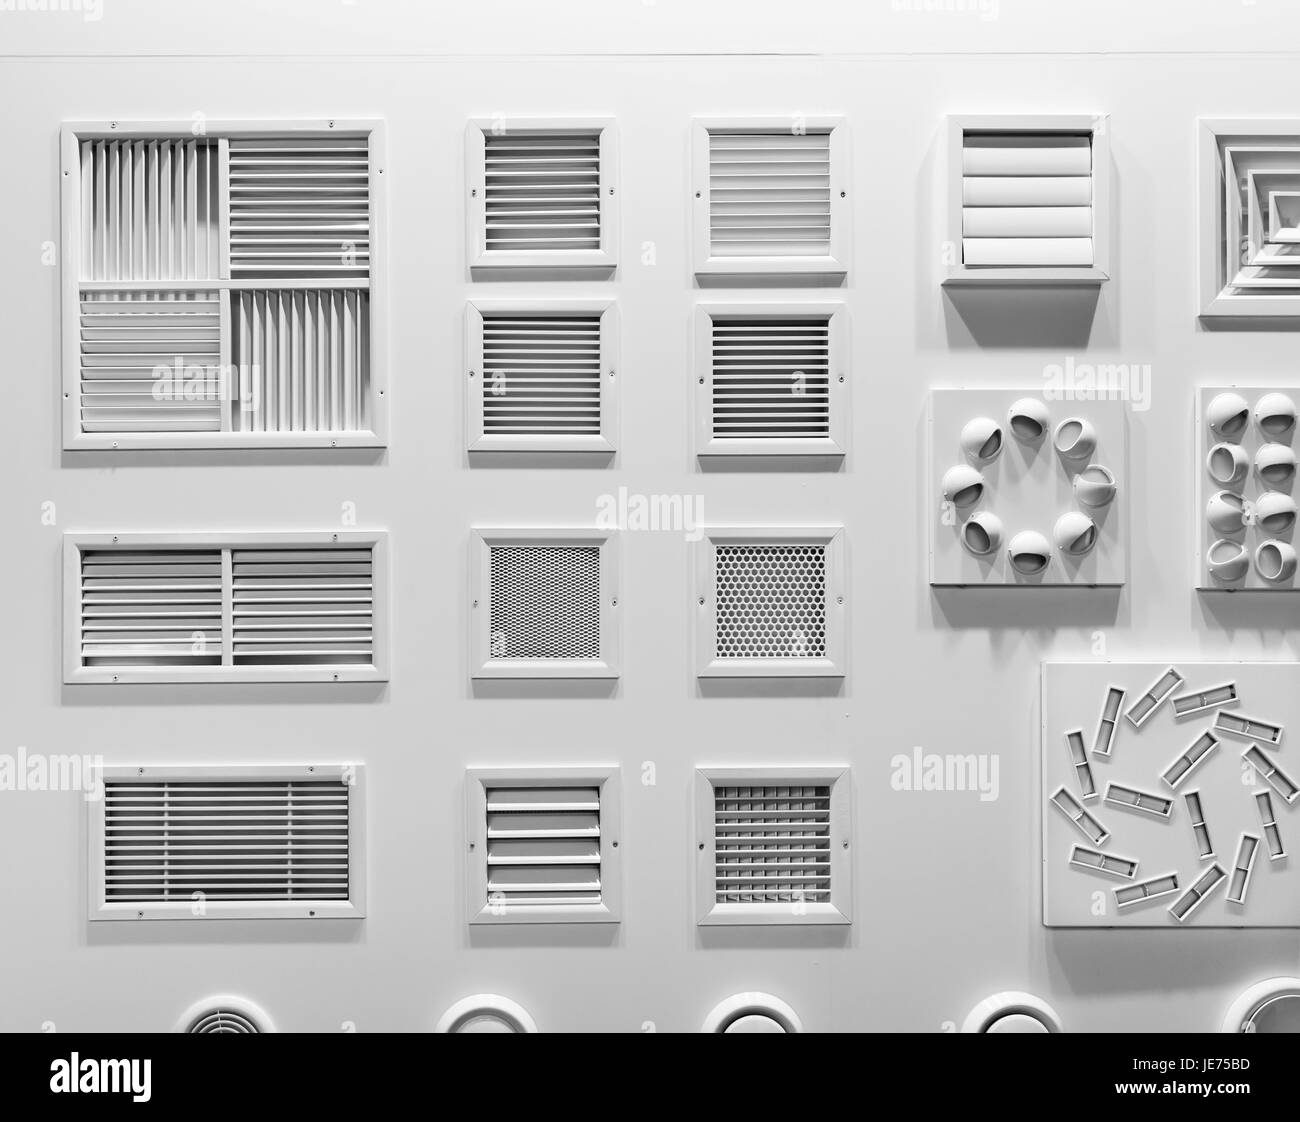 Showcase with plastic grills for house air vents closeup. Forced ...